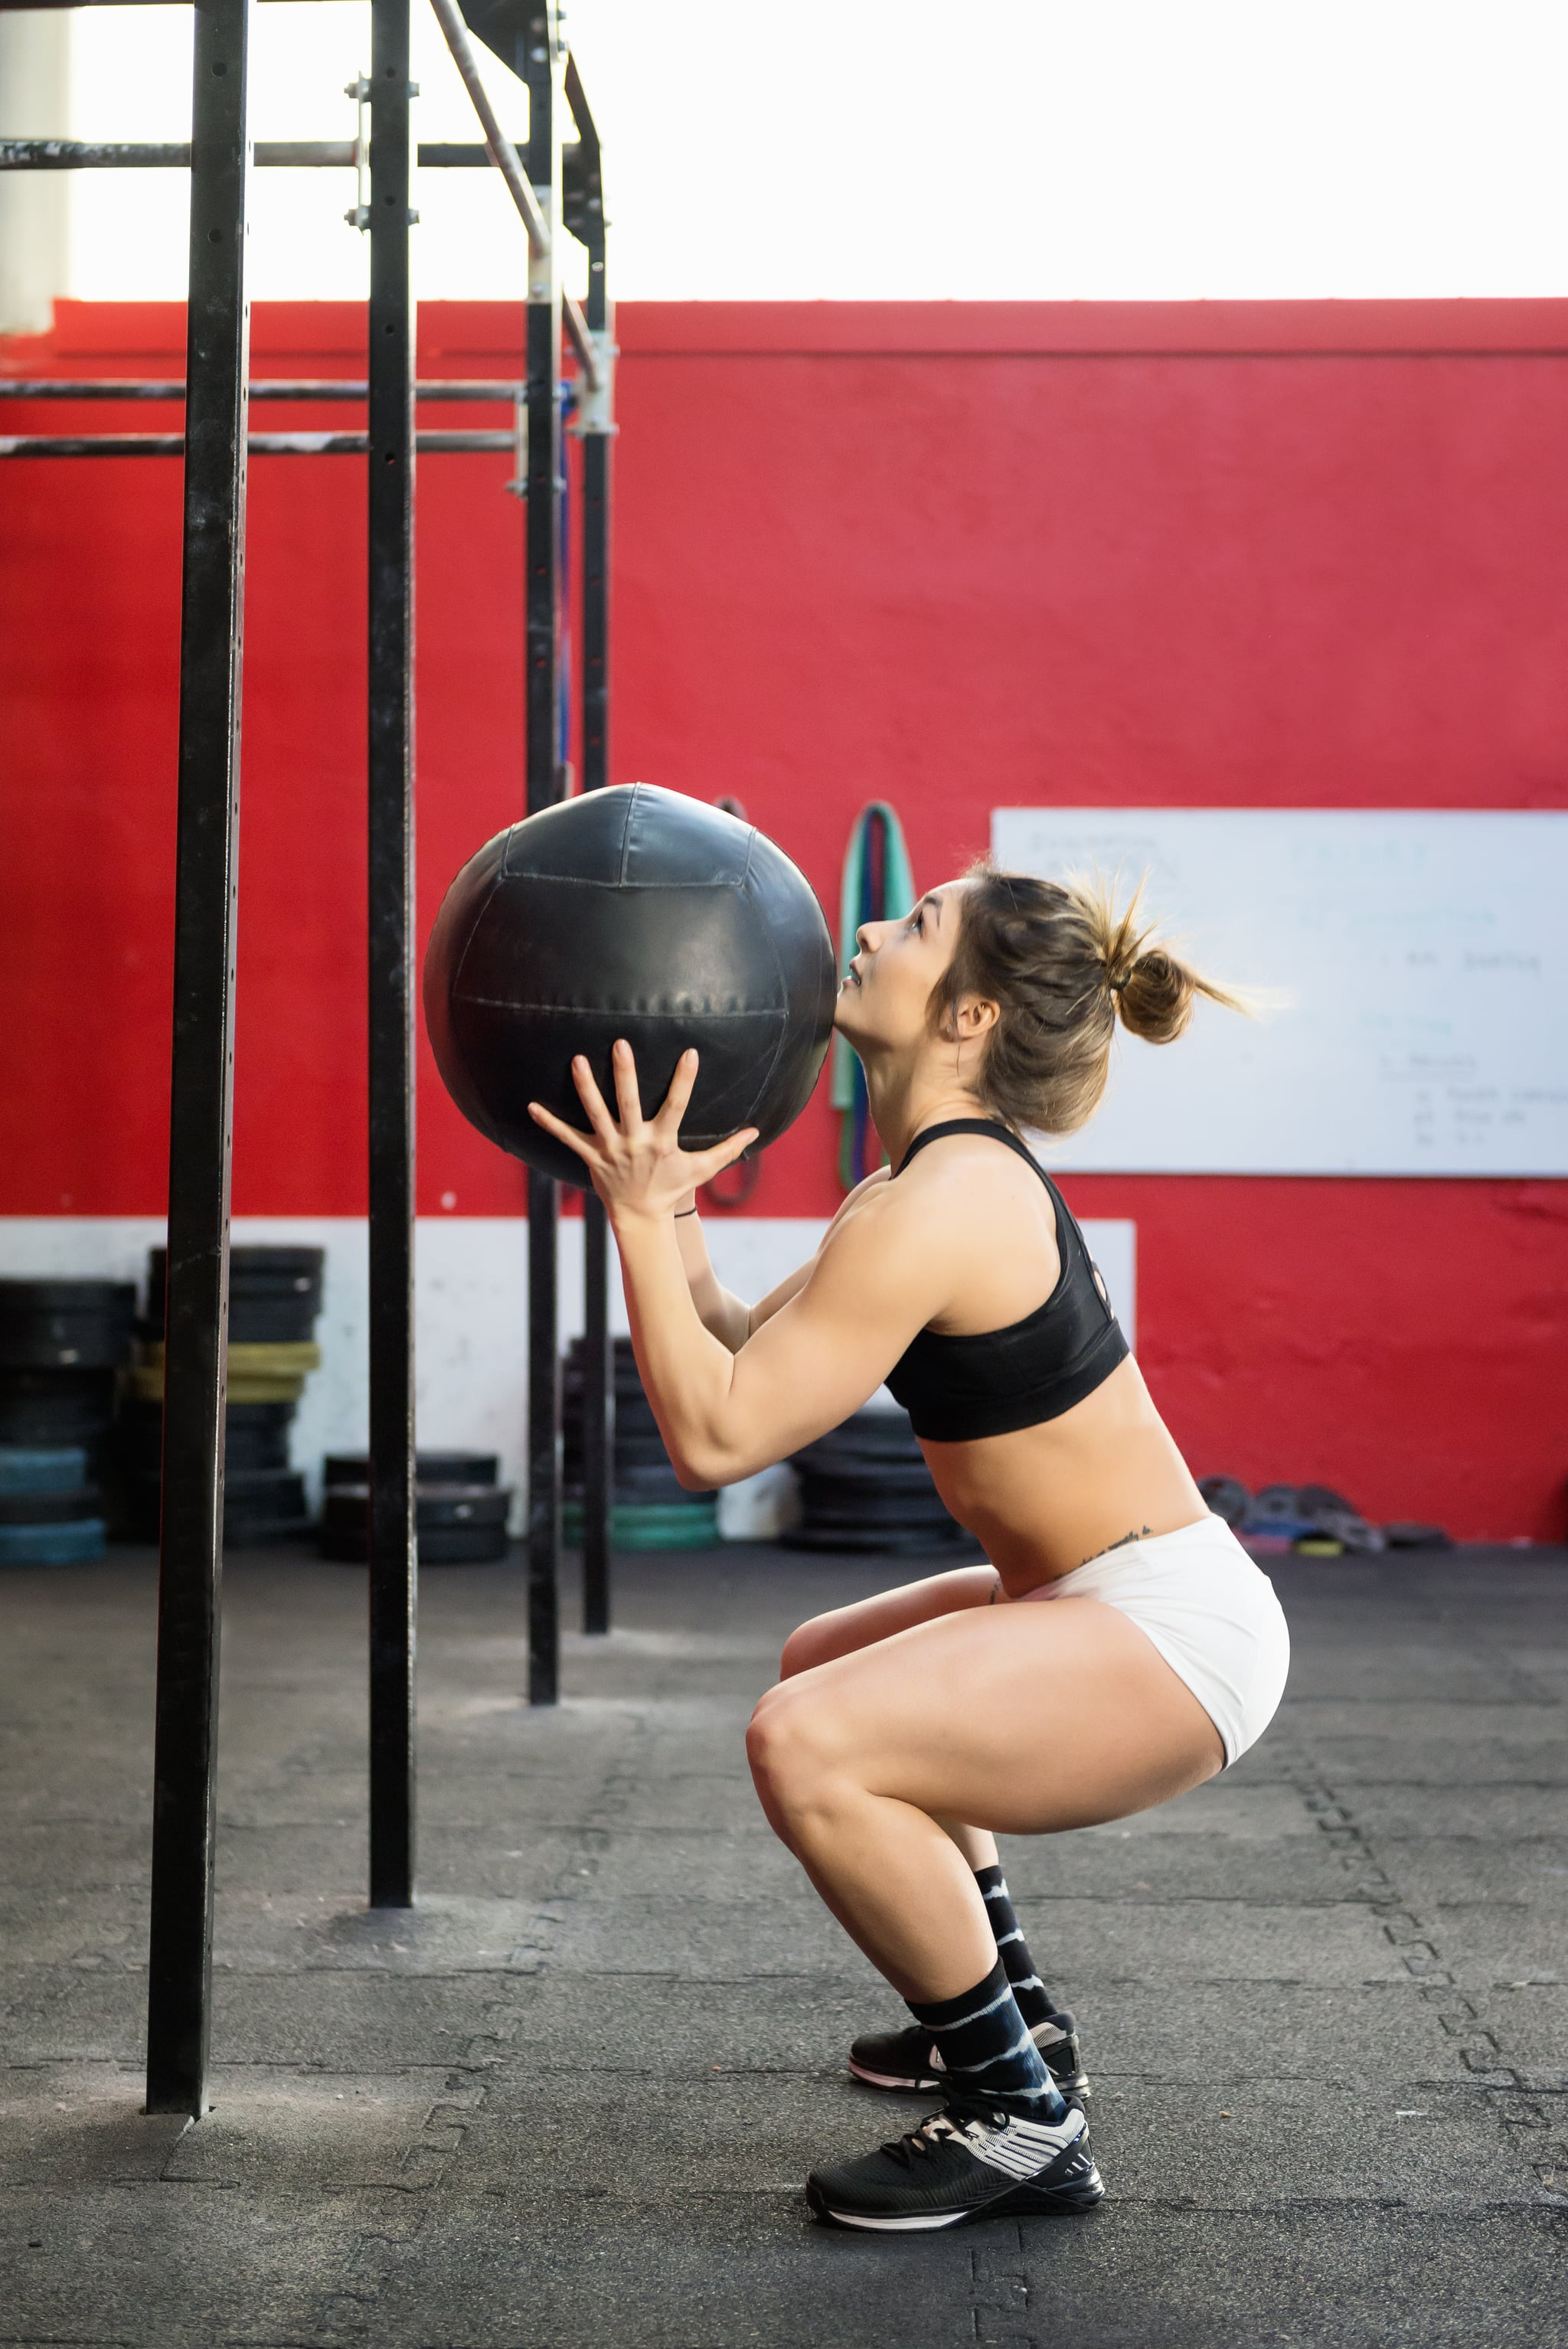 Vertical colour profile view image of muscled woman training at gym with a medicine ball.